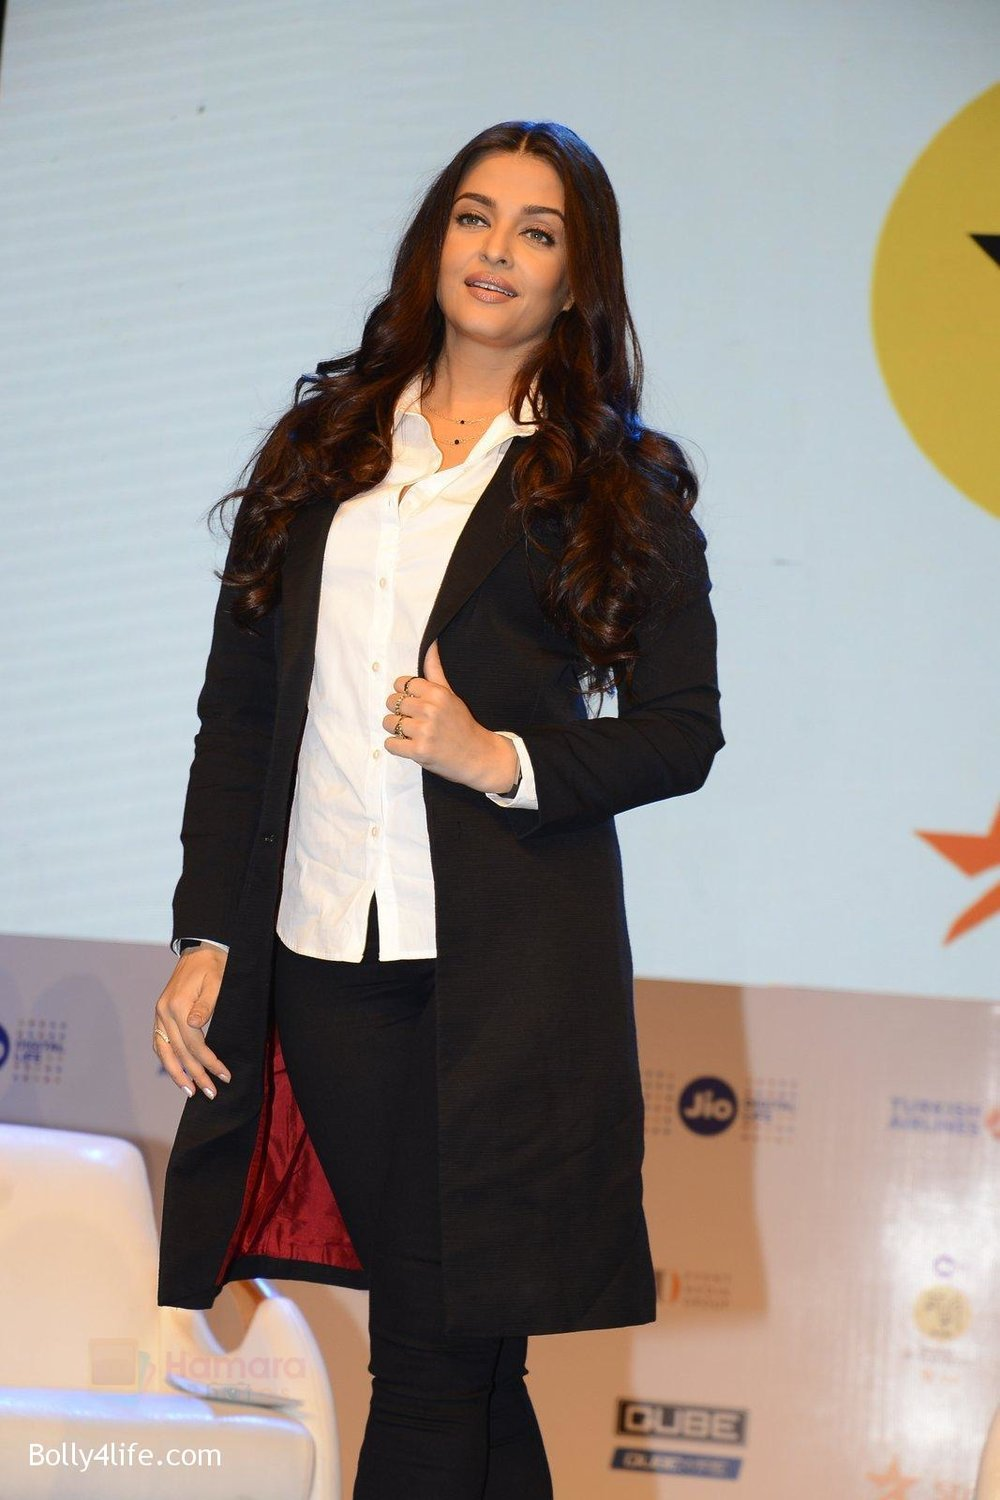 Aishwarya-Rai-talk-about-their-movie-Ae-Dil-Hai-Mushkil-during-the-Jio-MAMI-18th-Mumbai-Film-Festival-with-star-on-21st-Oct-2016-26.jpg